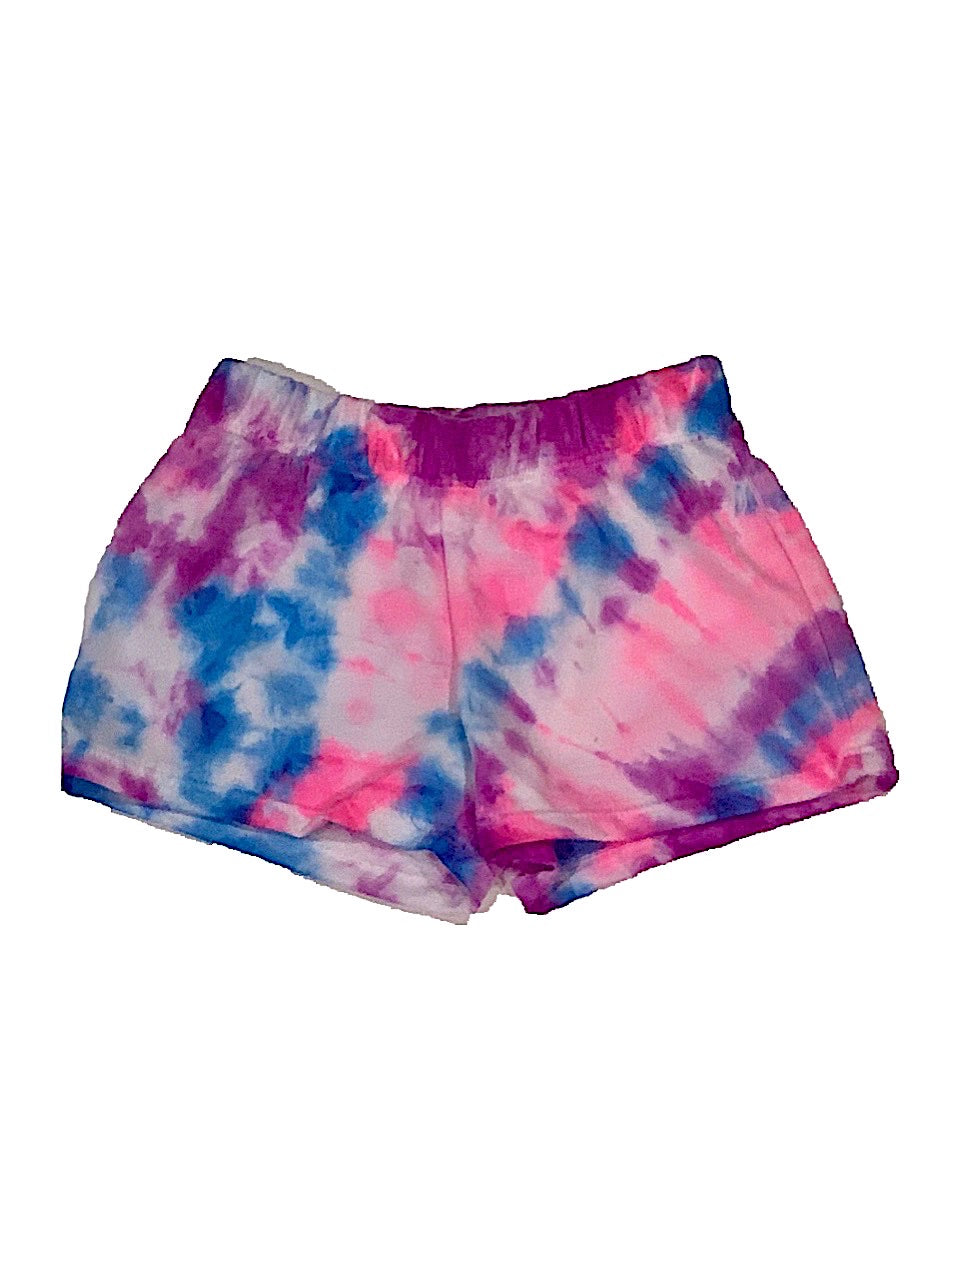 Firehouse Neon Tie Dye Shorts